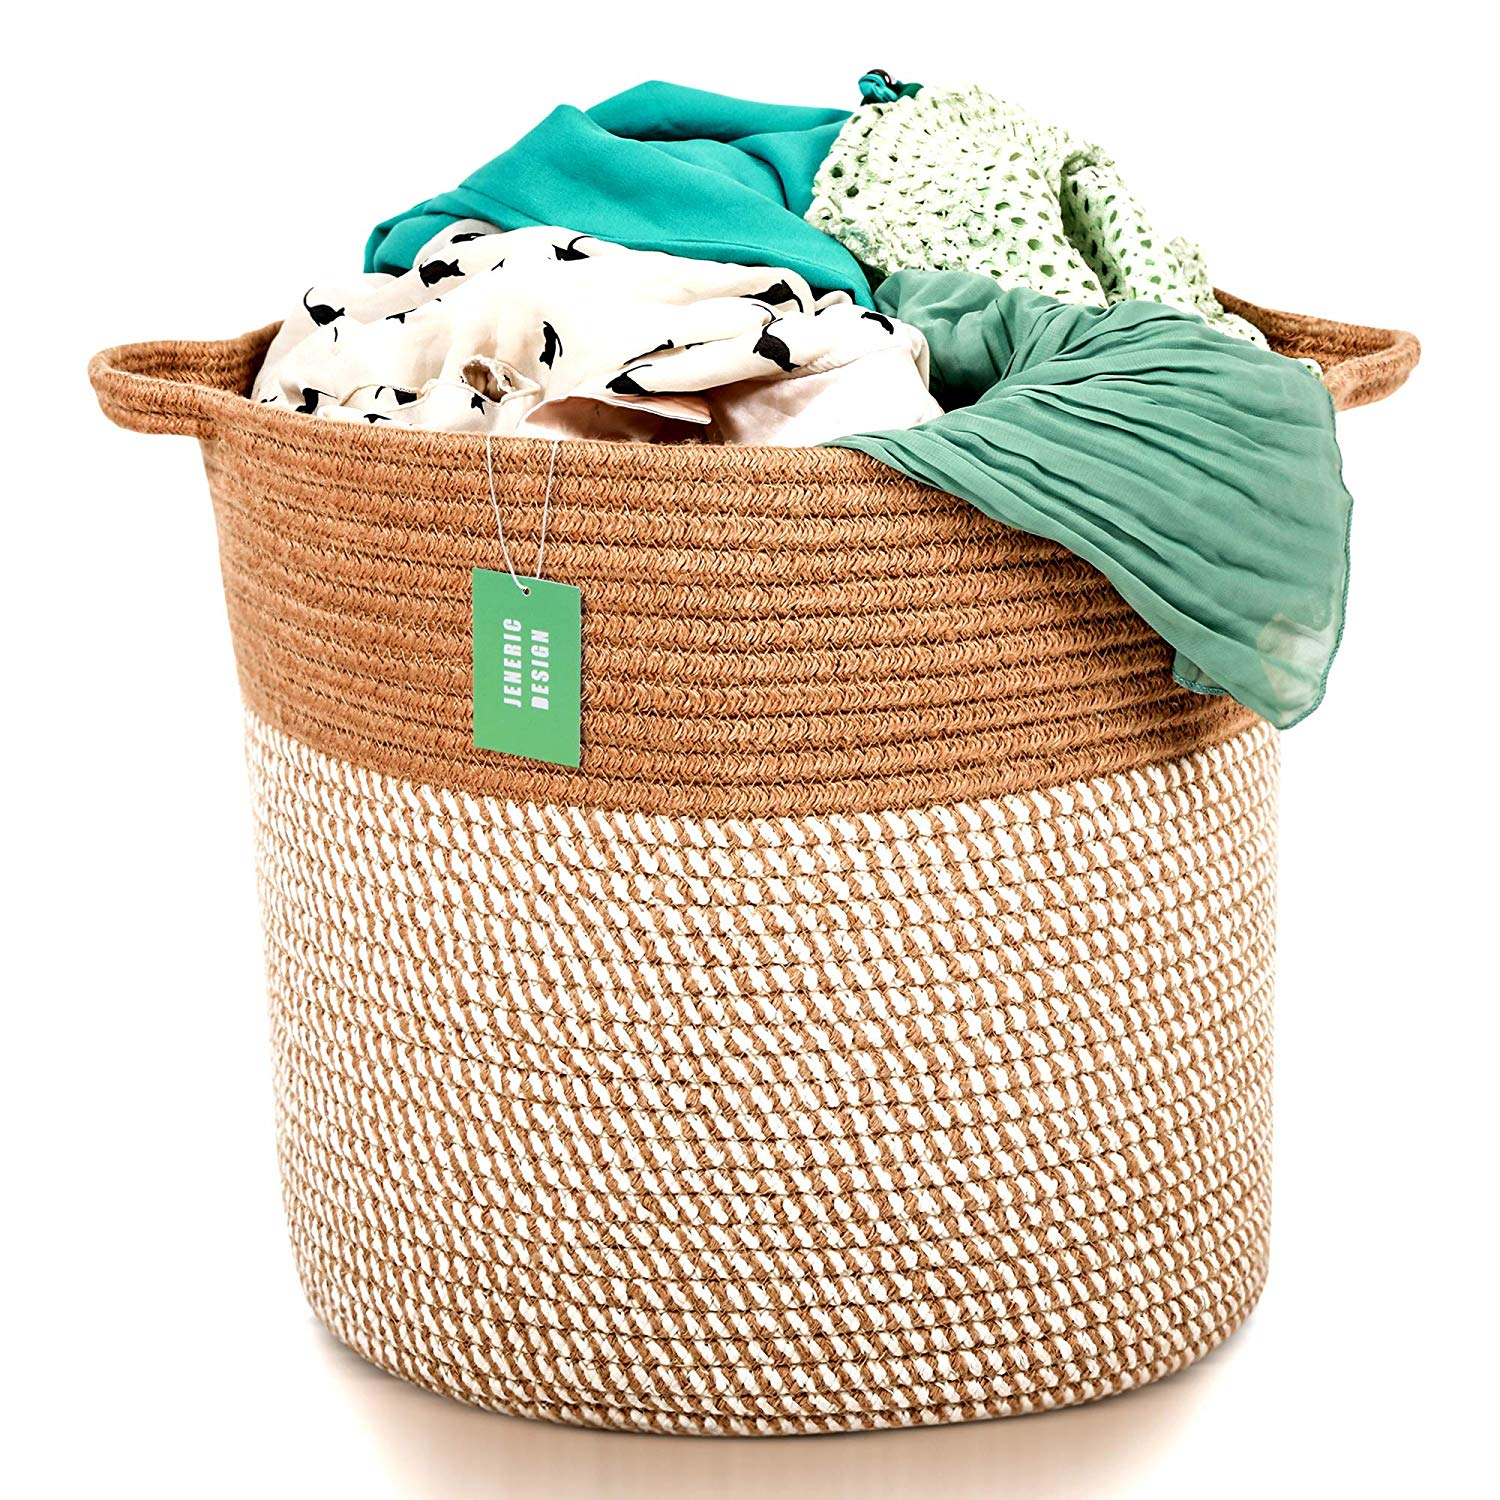 Fabric & Woven Baskets